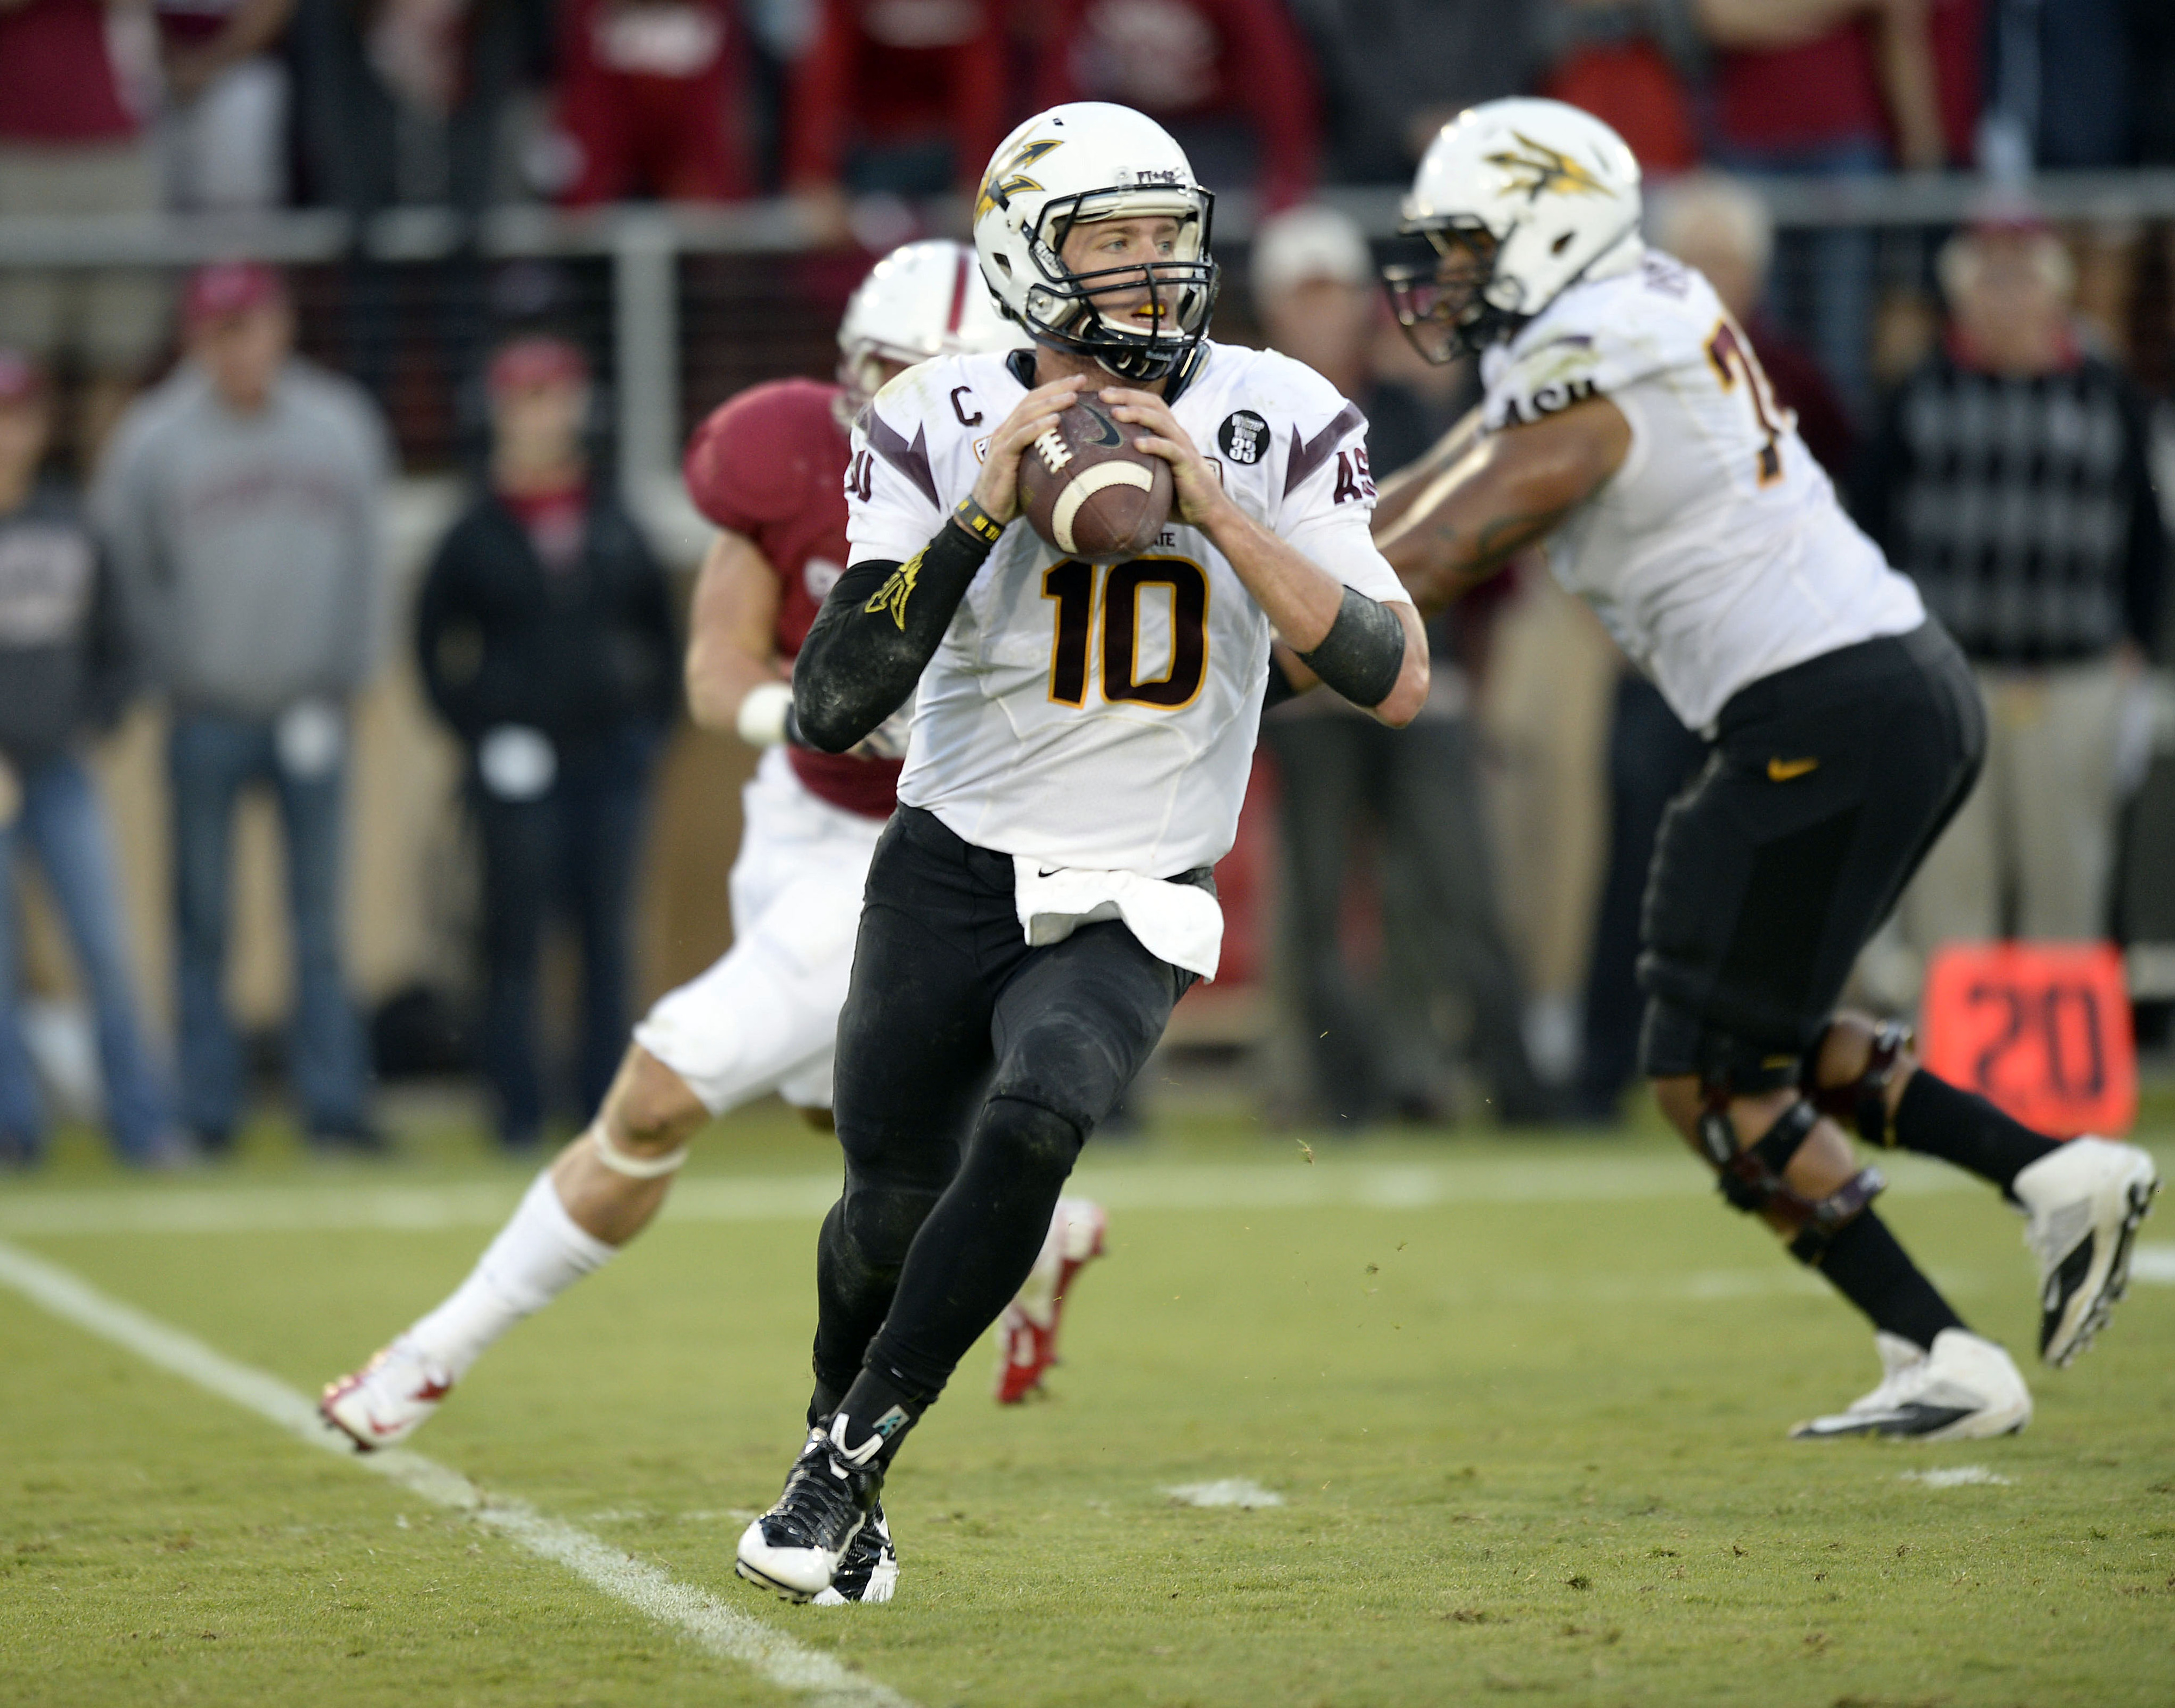 Taylor Kelly had a few gut checks from the Stanford defensive line.